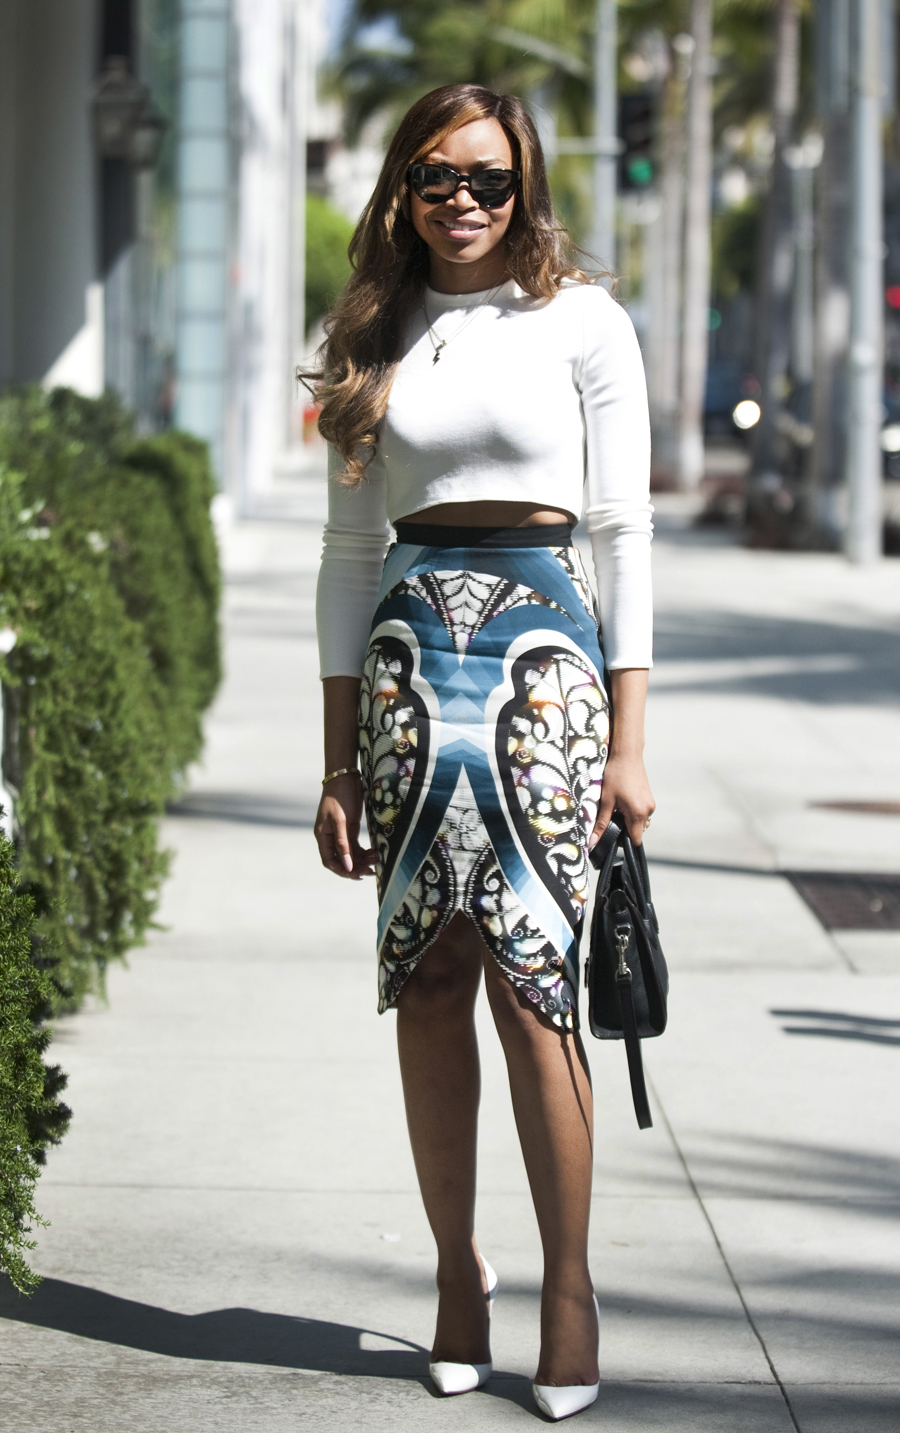 Titi Michael, 24, with a Celine bag and a Peter Pilowto skirt.